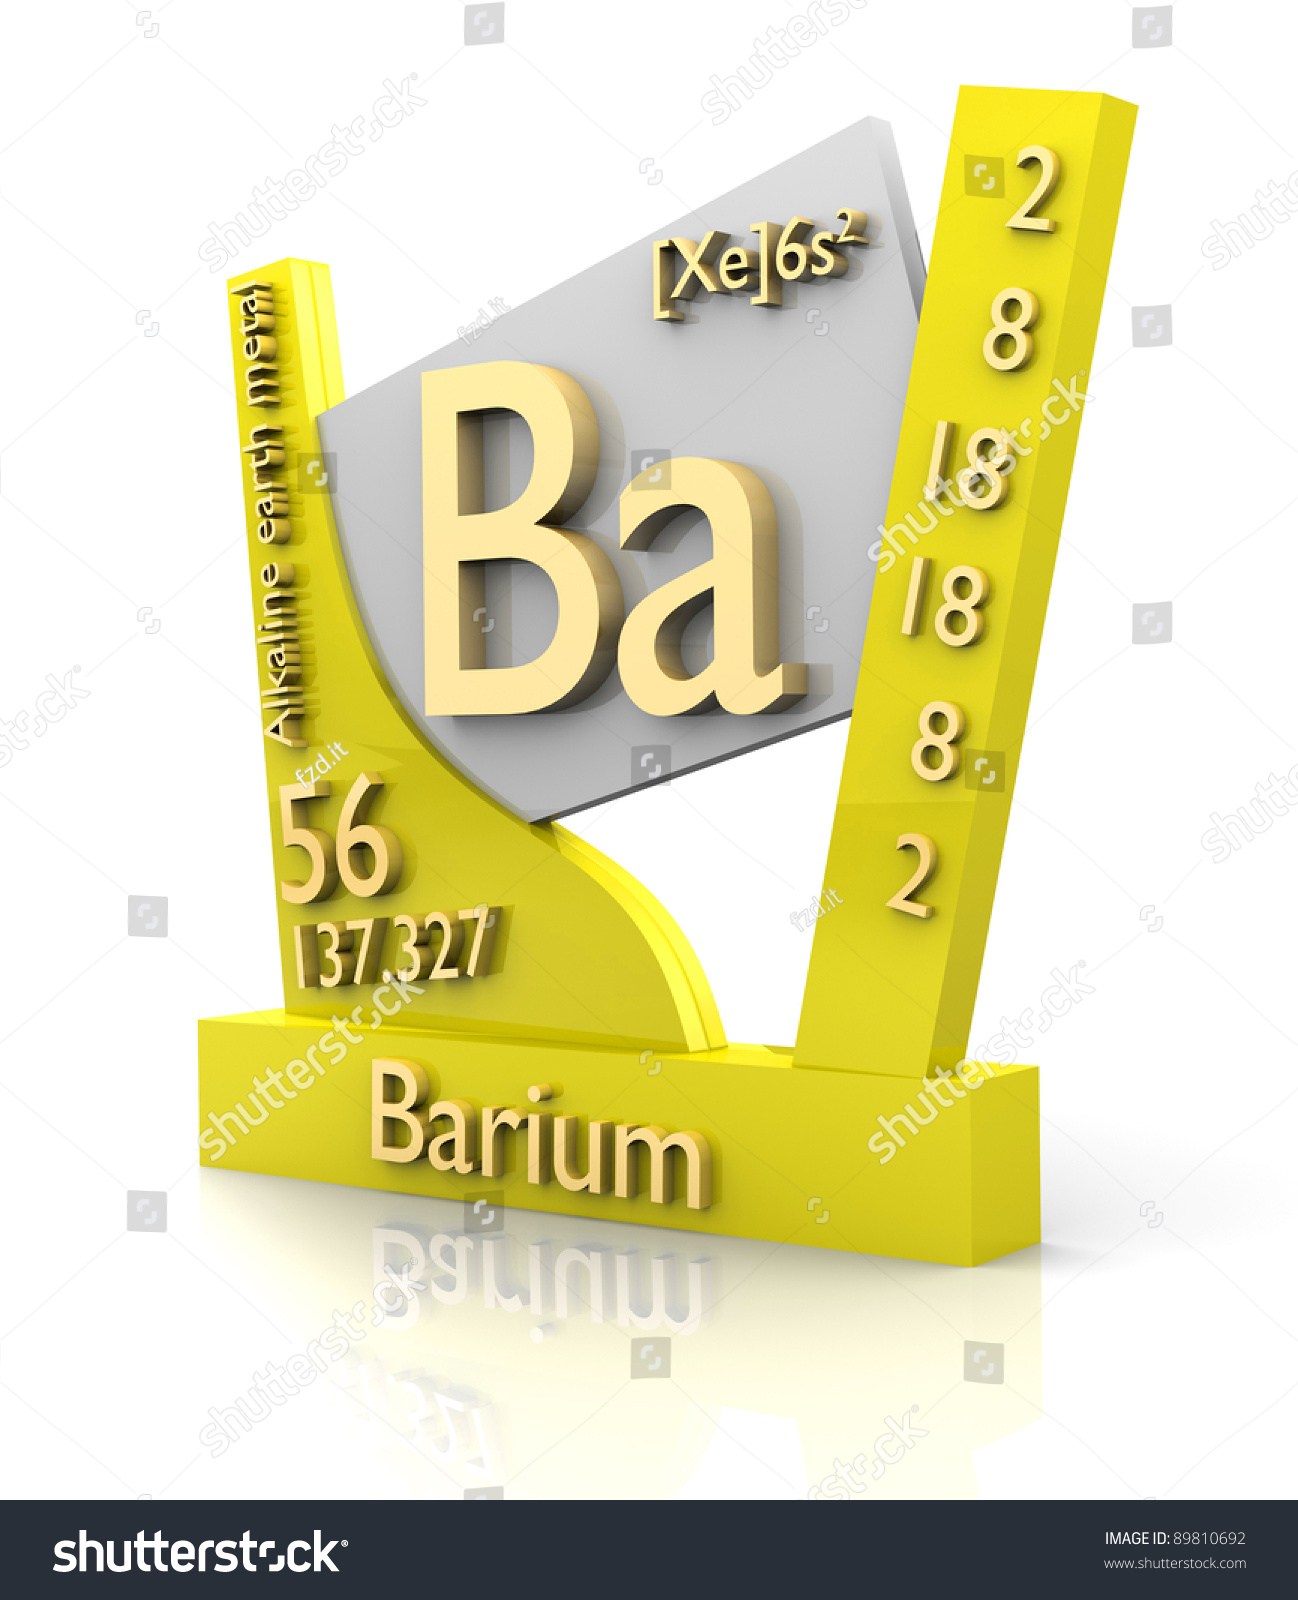 Ba symbol periodic table gallery periodic table images ba element periodic table choice image periodic table images ba element periodic table image collections periodic gamestrikefo Image collections